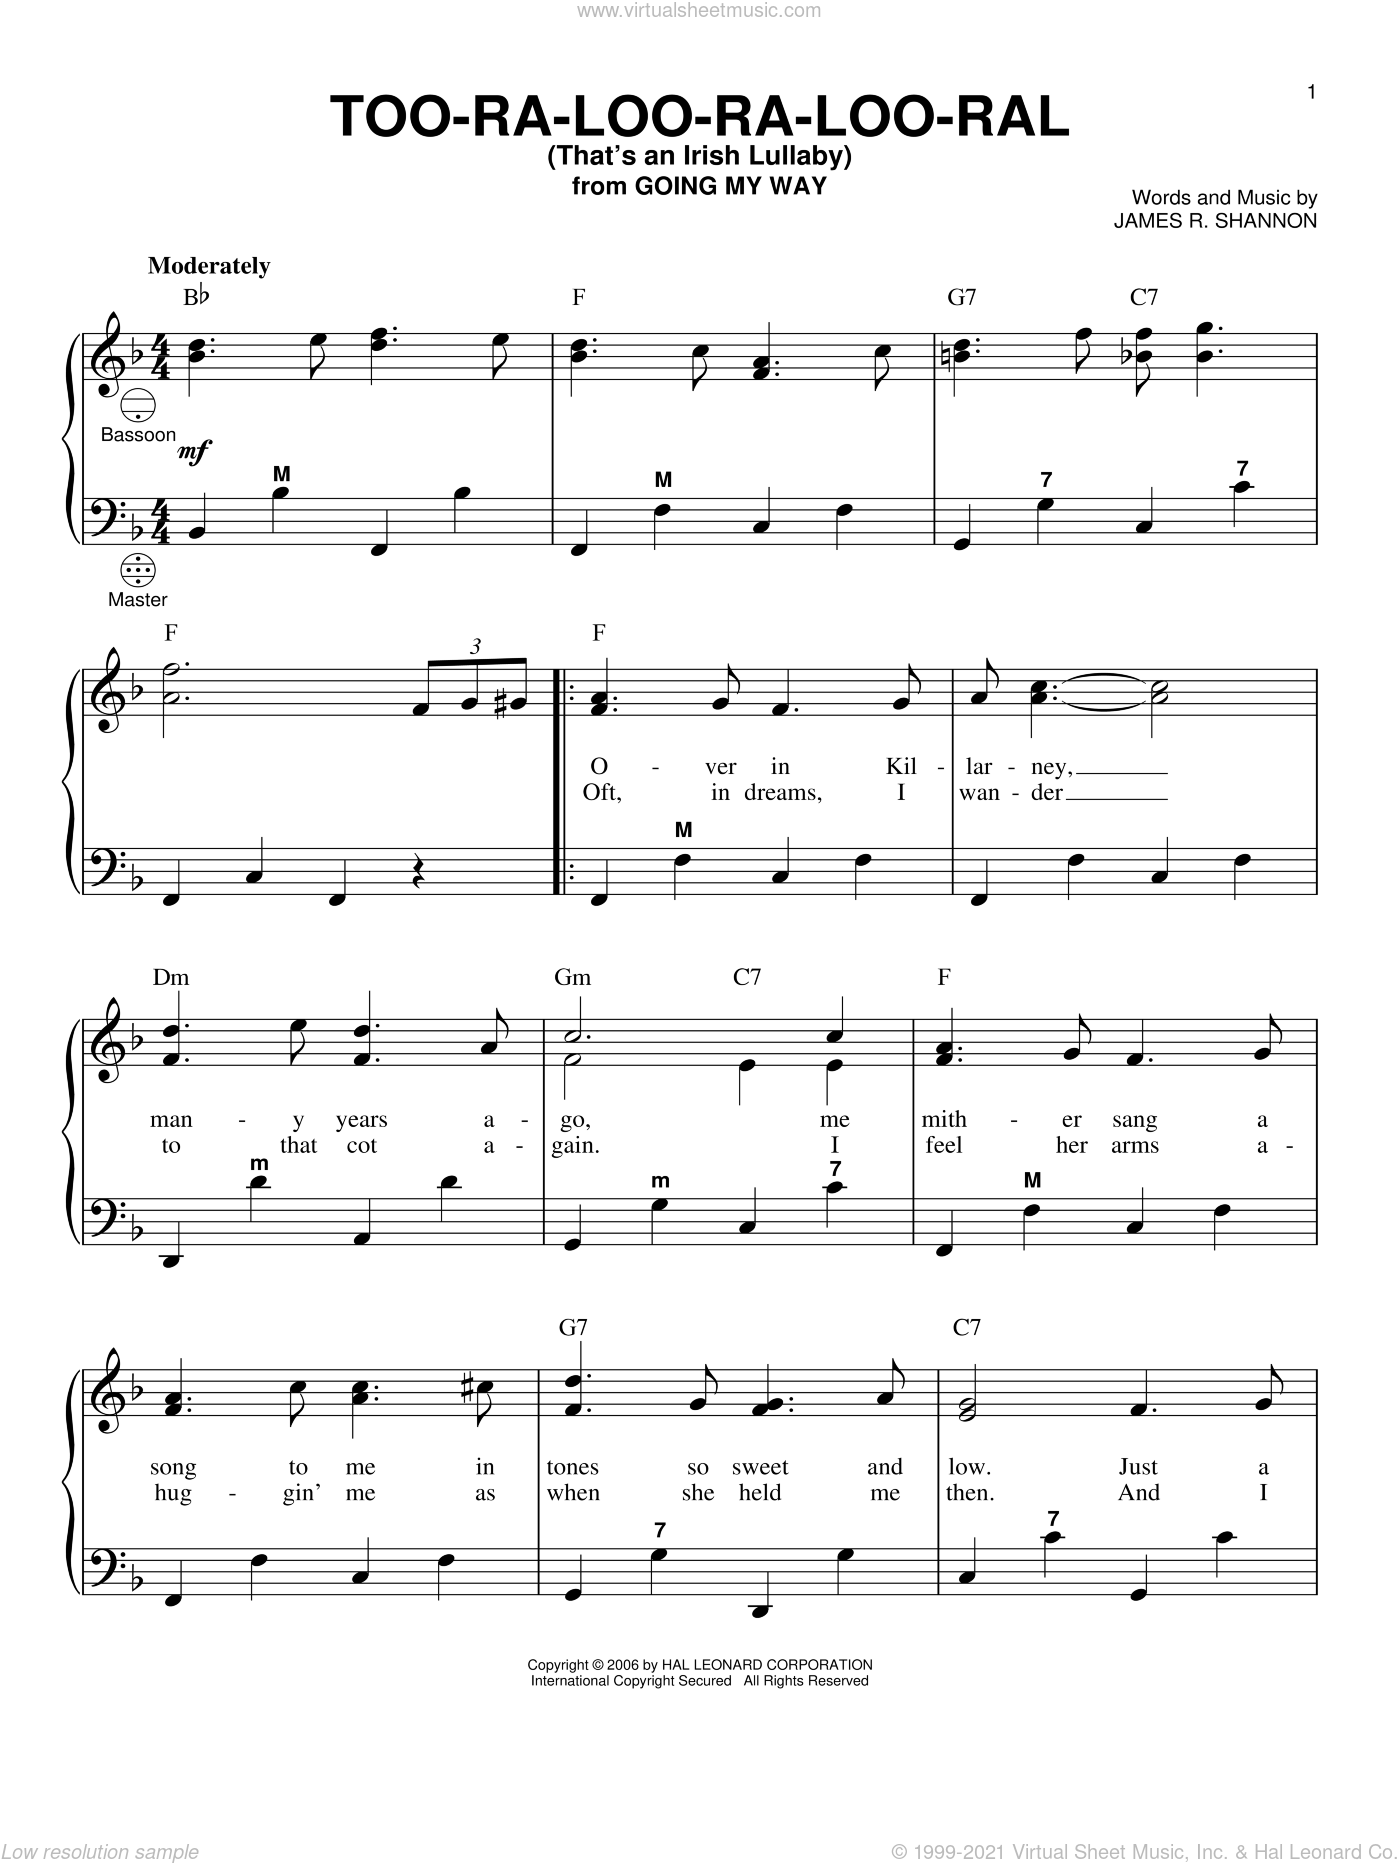 Too-Ra-Loo-Ra-Loo-Ral (That's An Irish Lullaby) sheet music for accordion by James R. Shannon and Gary Meisner, intermediate. Score Image Preview.